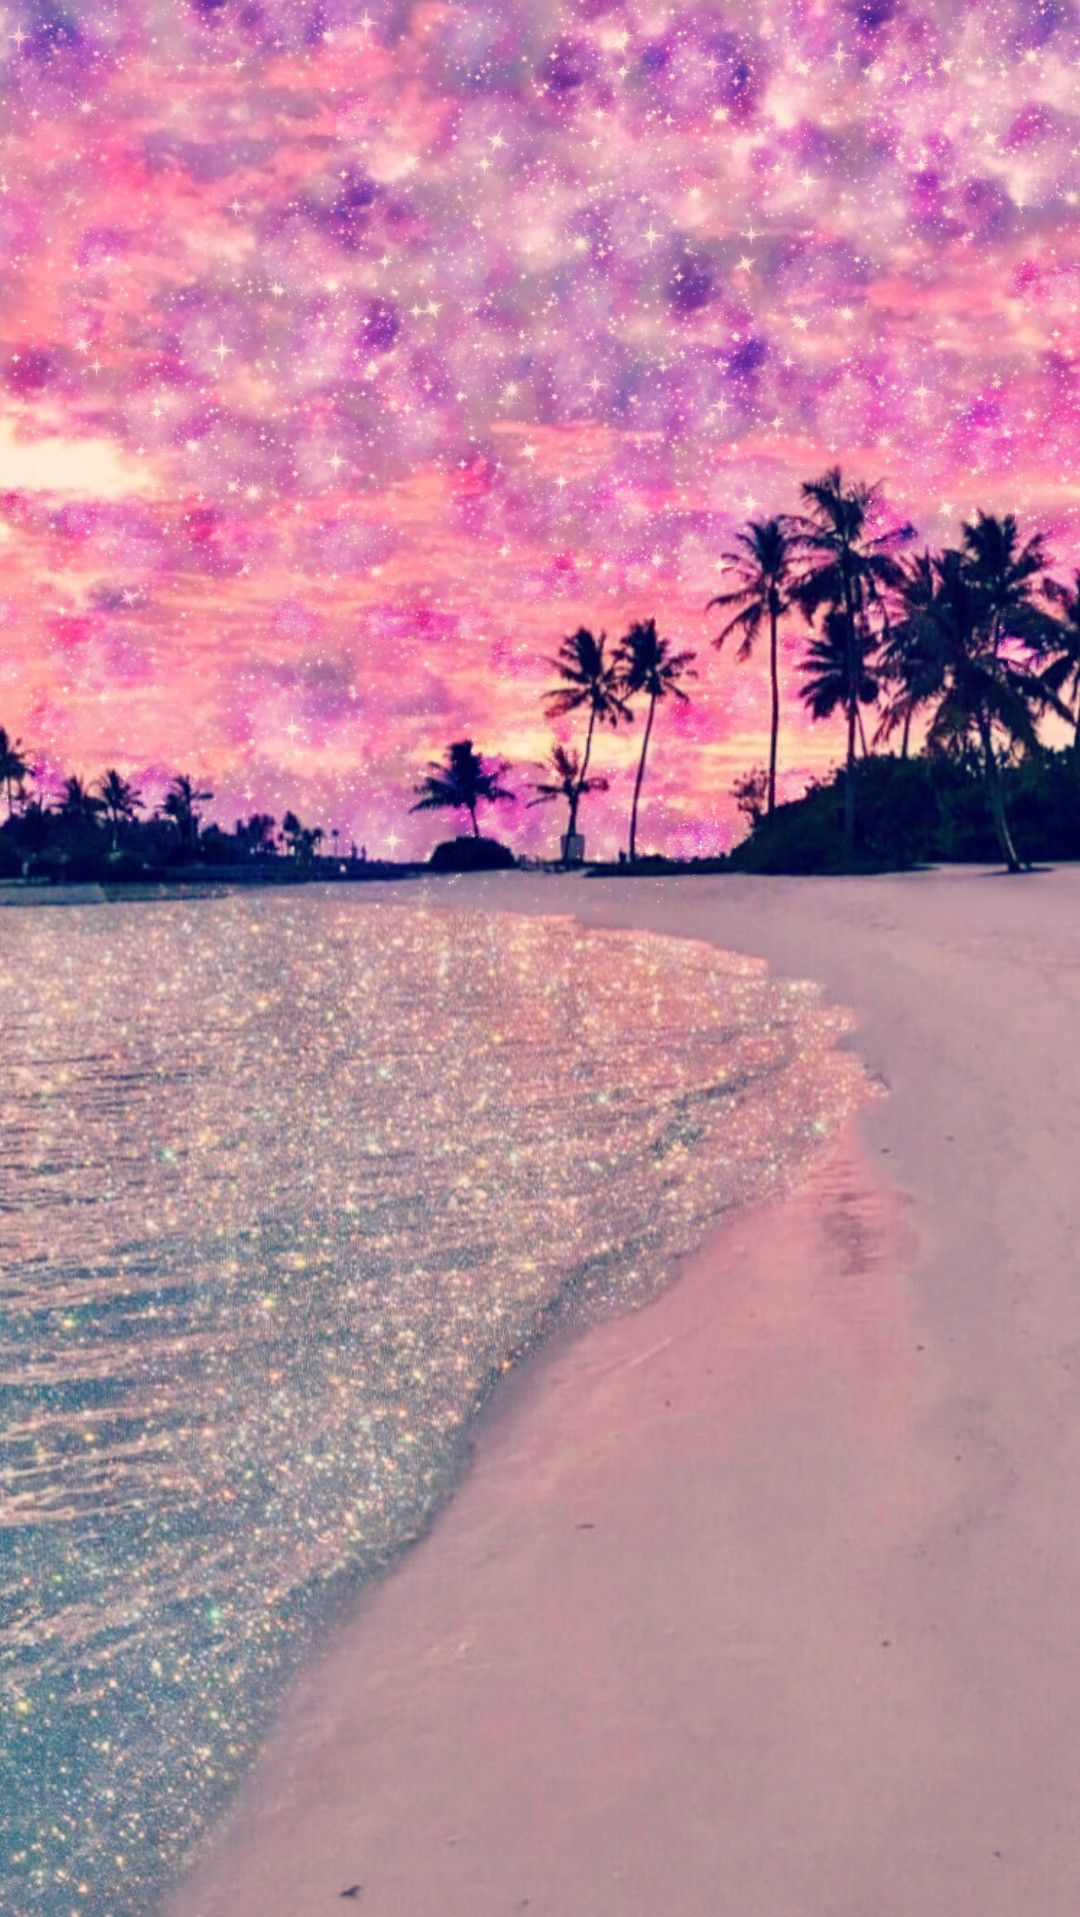 Galaxy Beach Made By Me Purple Sparkly Wallpapers Backgrounds Glitter Beautiful Wallpapers Backgrounds Pink Wallpaper Backgrounds Beach Phone Wallpaper